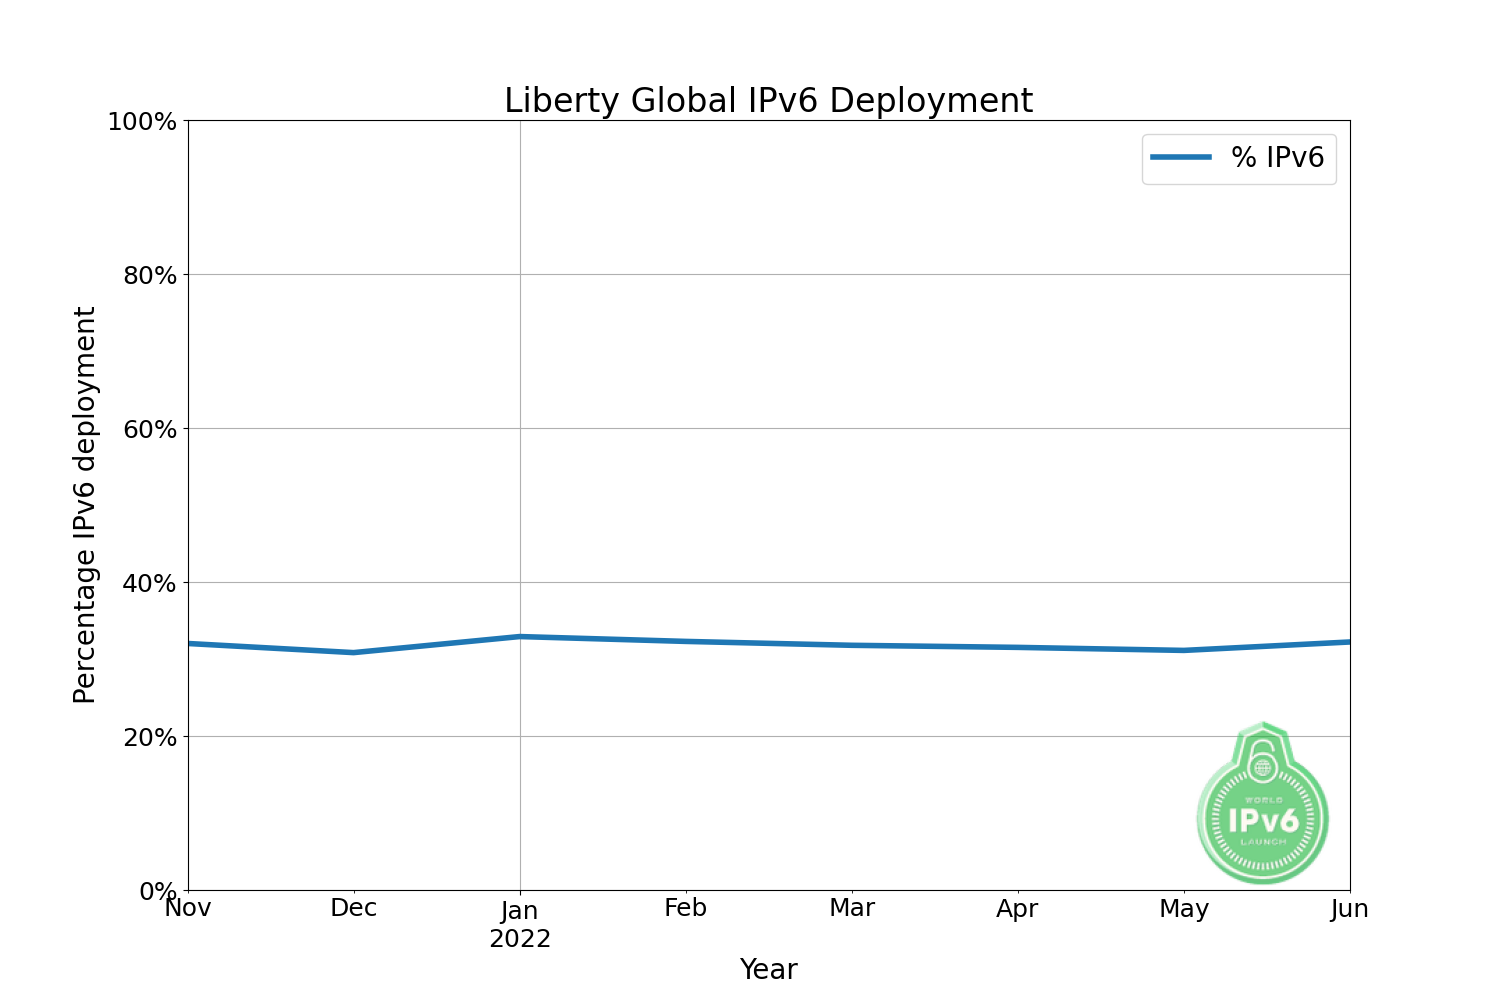 https://www.worldipv6launch.org/apps/ipv6week/measurement/images/graphs/LibertyGlobal.png